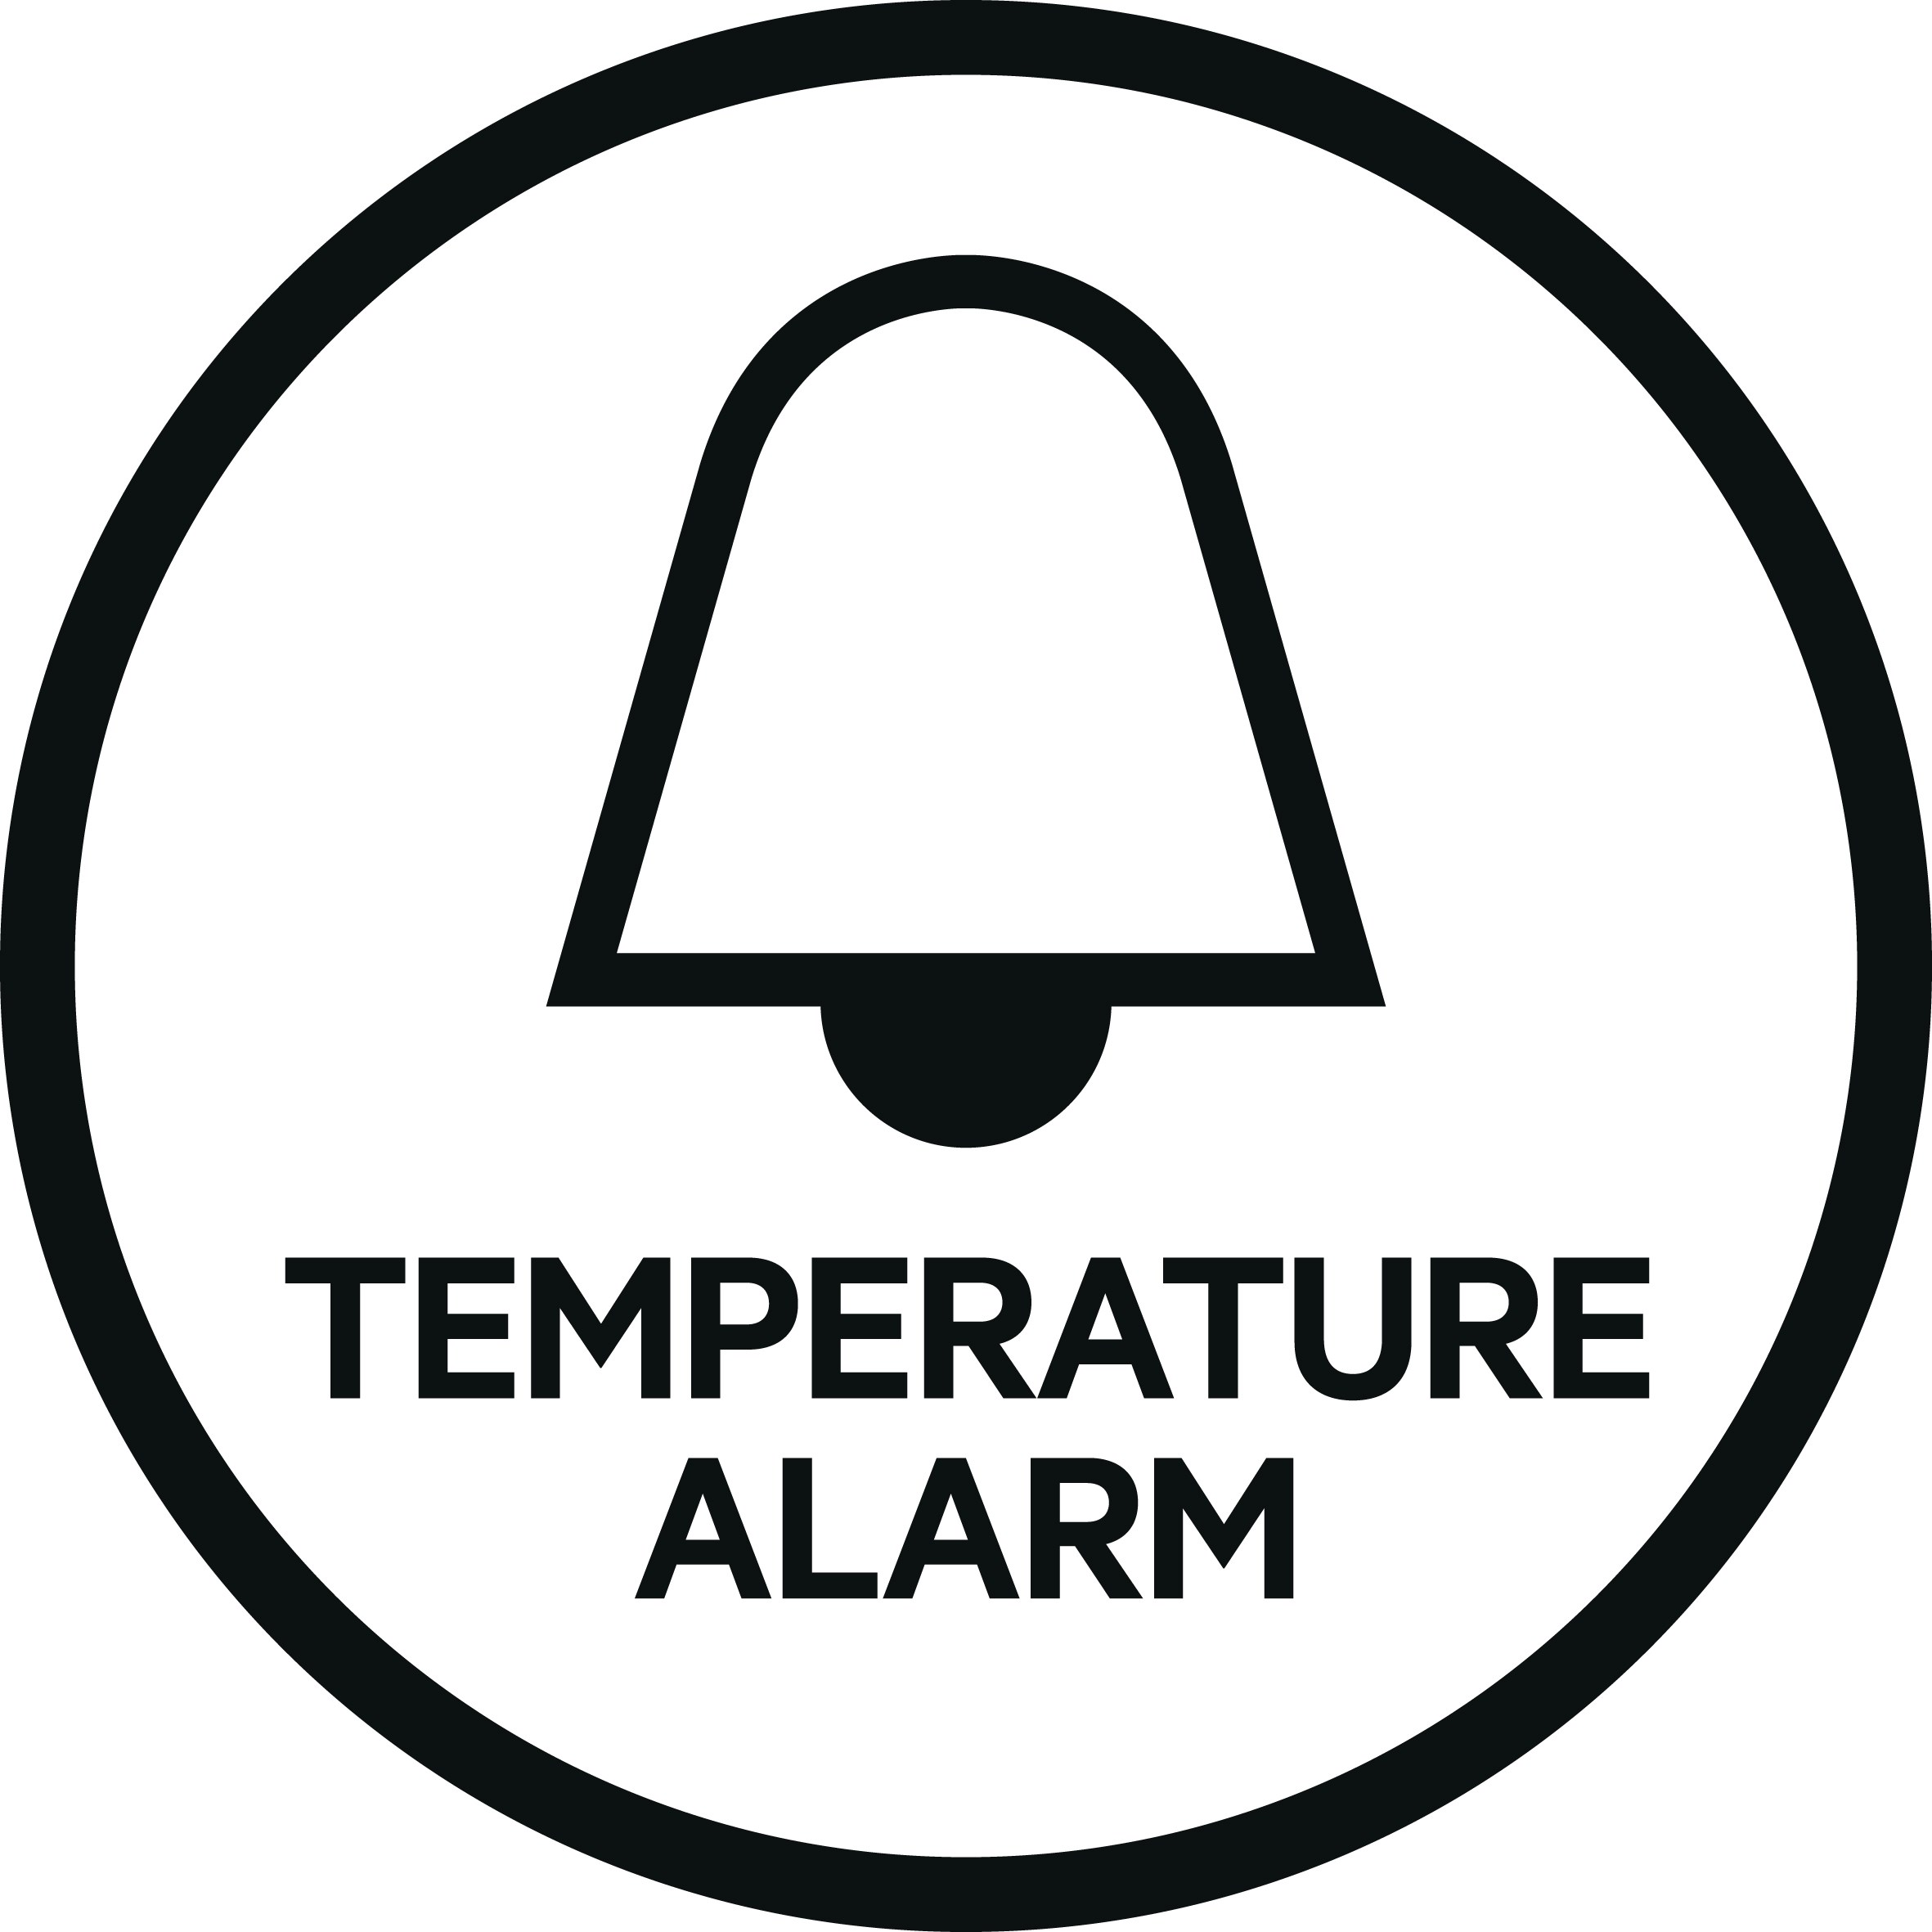 Temperature_alarm-PSAAAP16PC569102.jpg